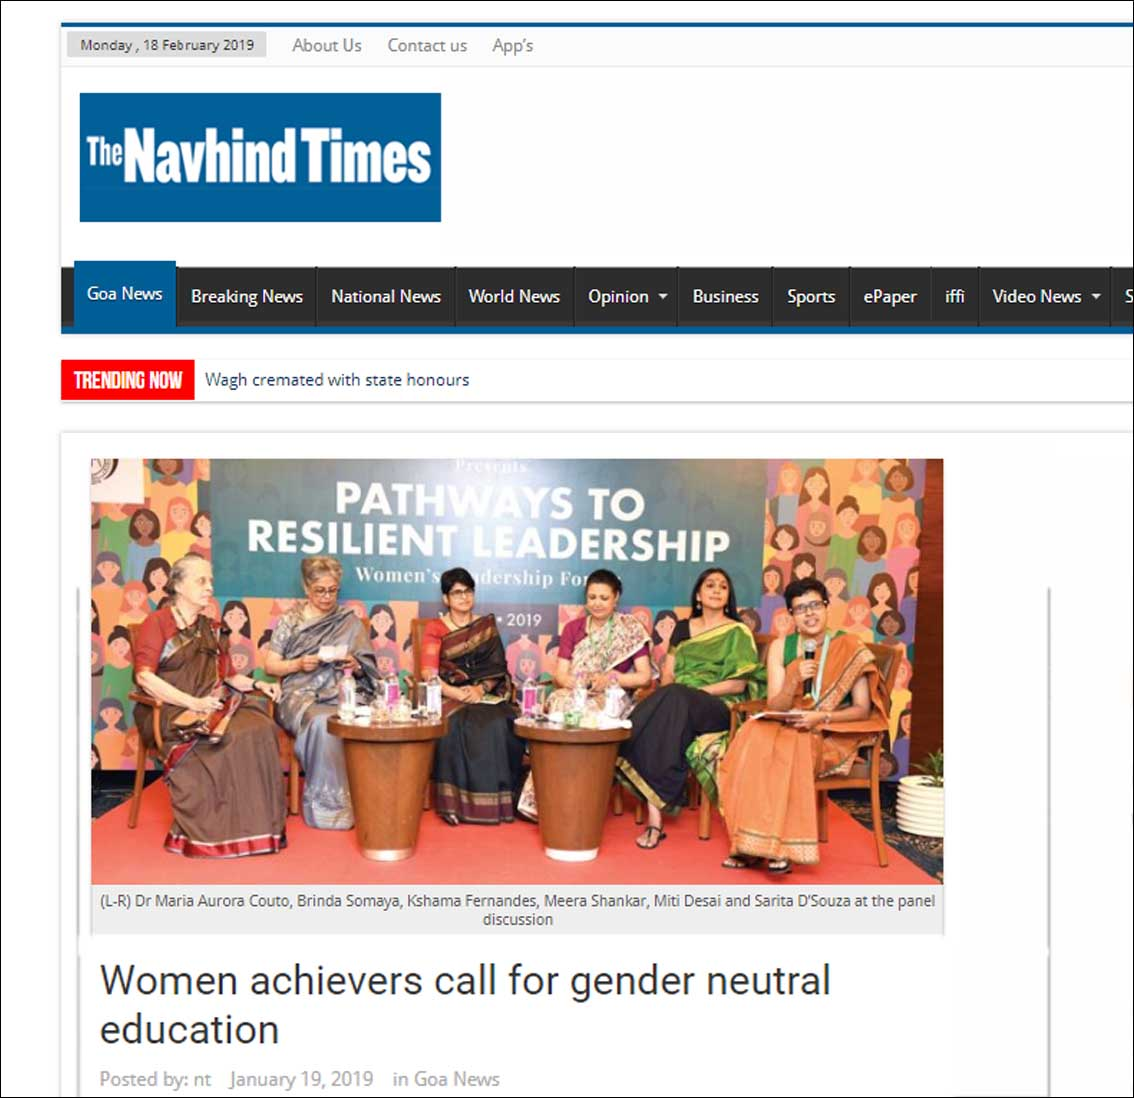 Women achievers call for gender neutral education, The Navhind times - January 2019